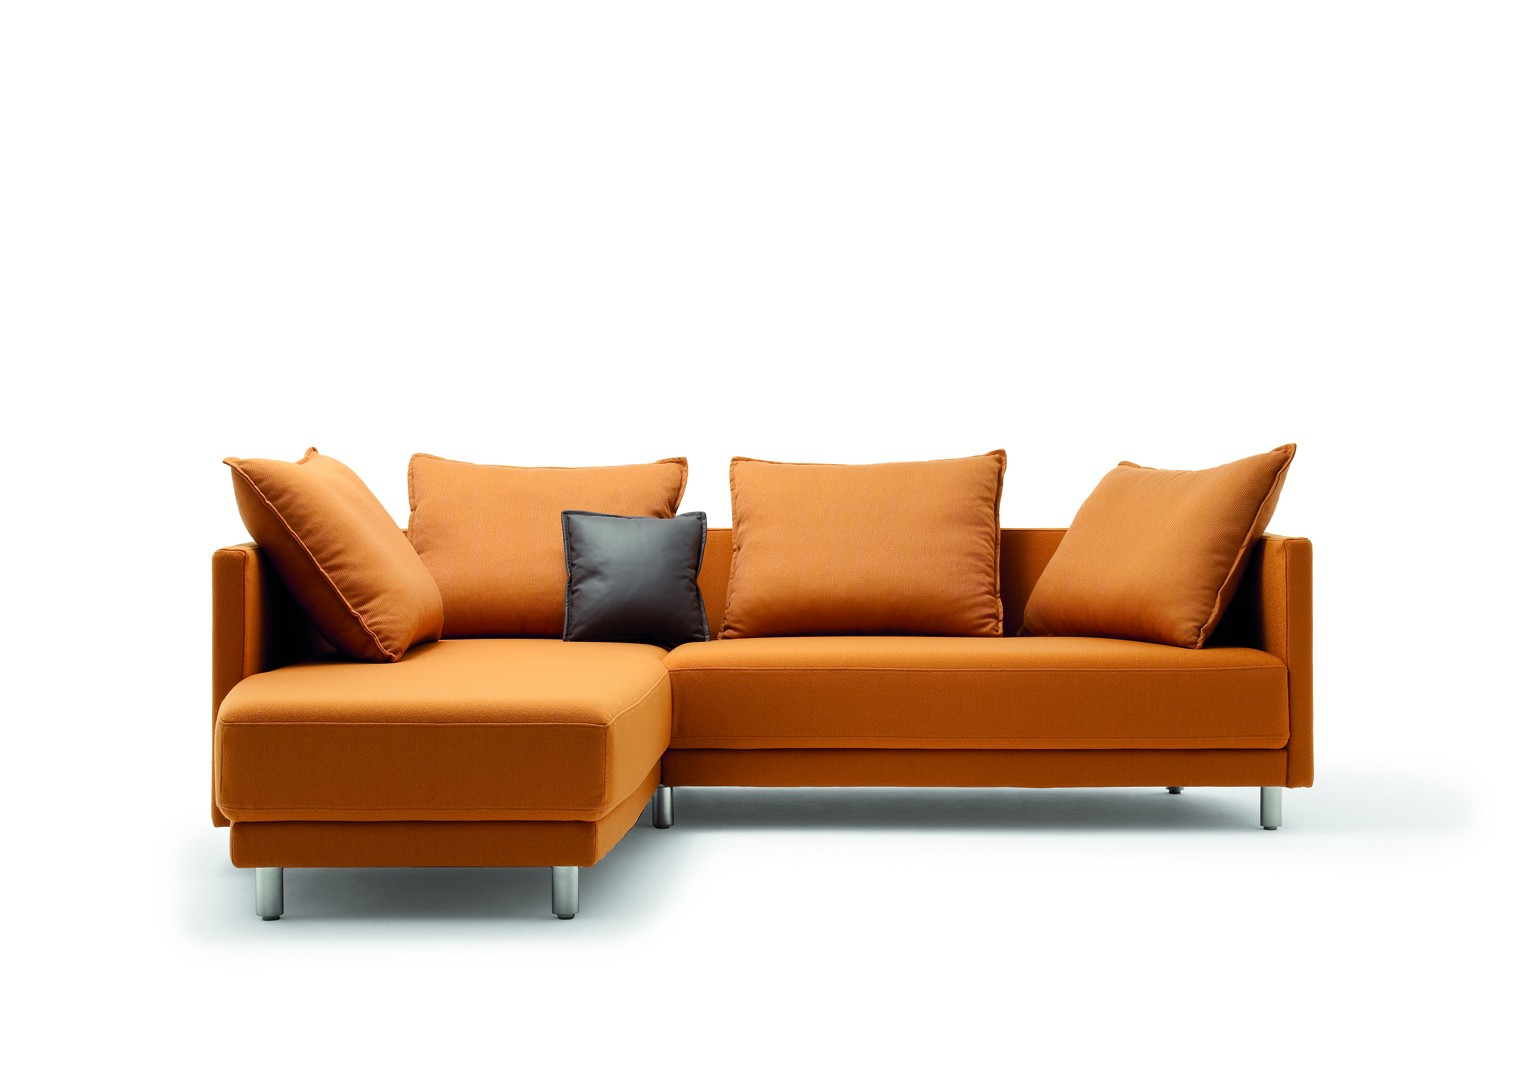 Stunning Modern Style Rolf Benz Sofa Orange Color Design Ideas